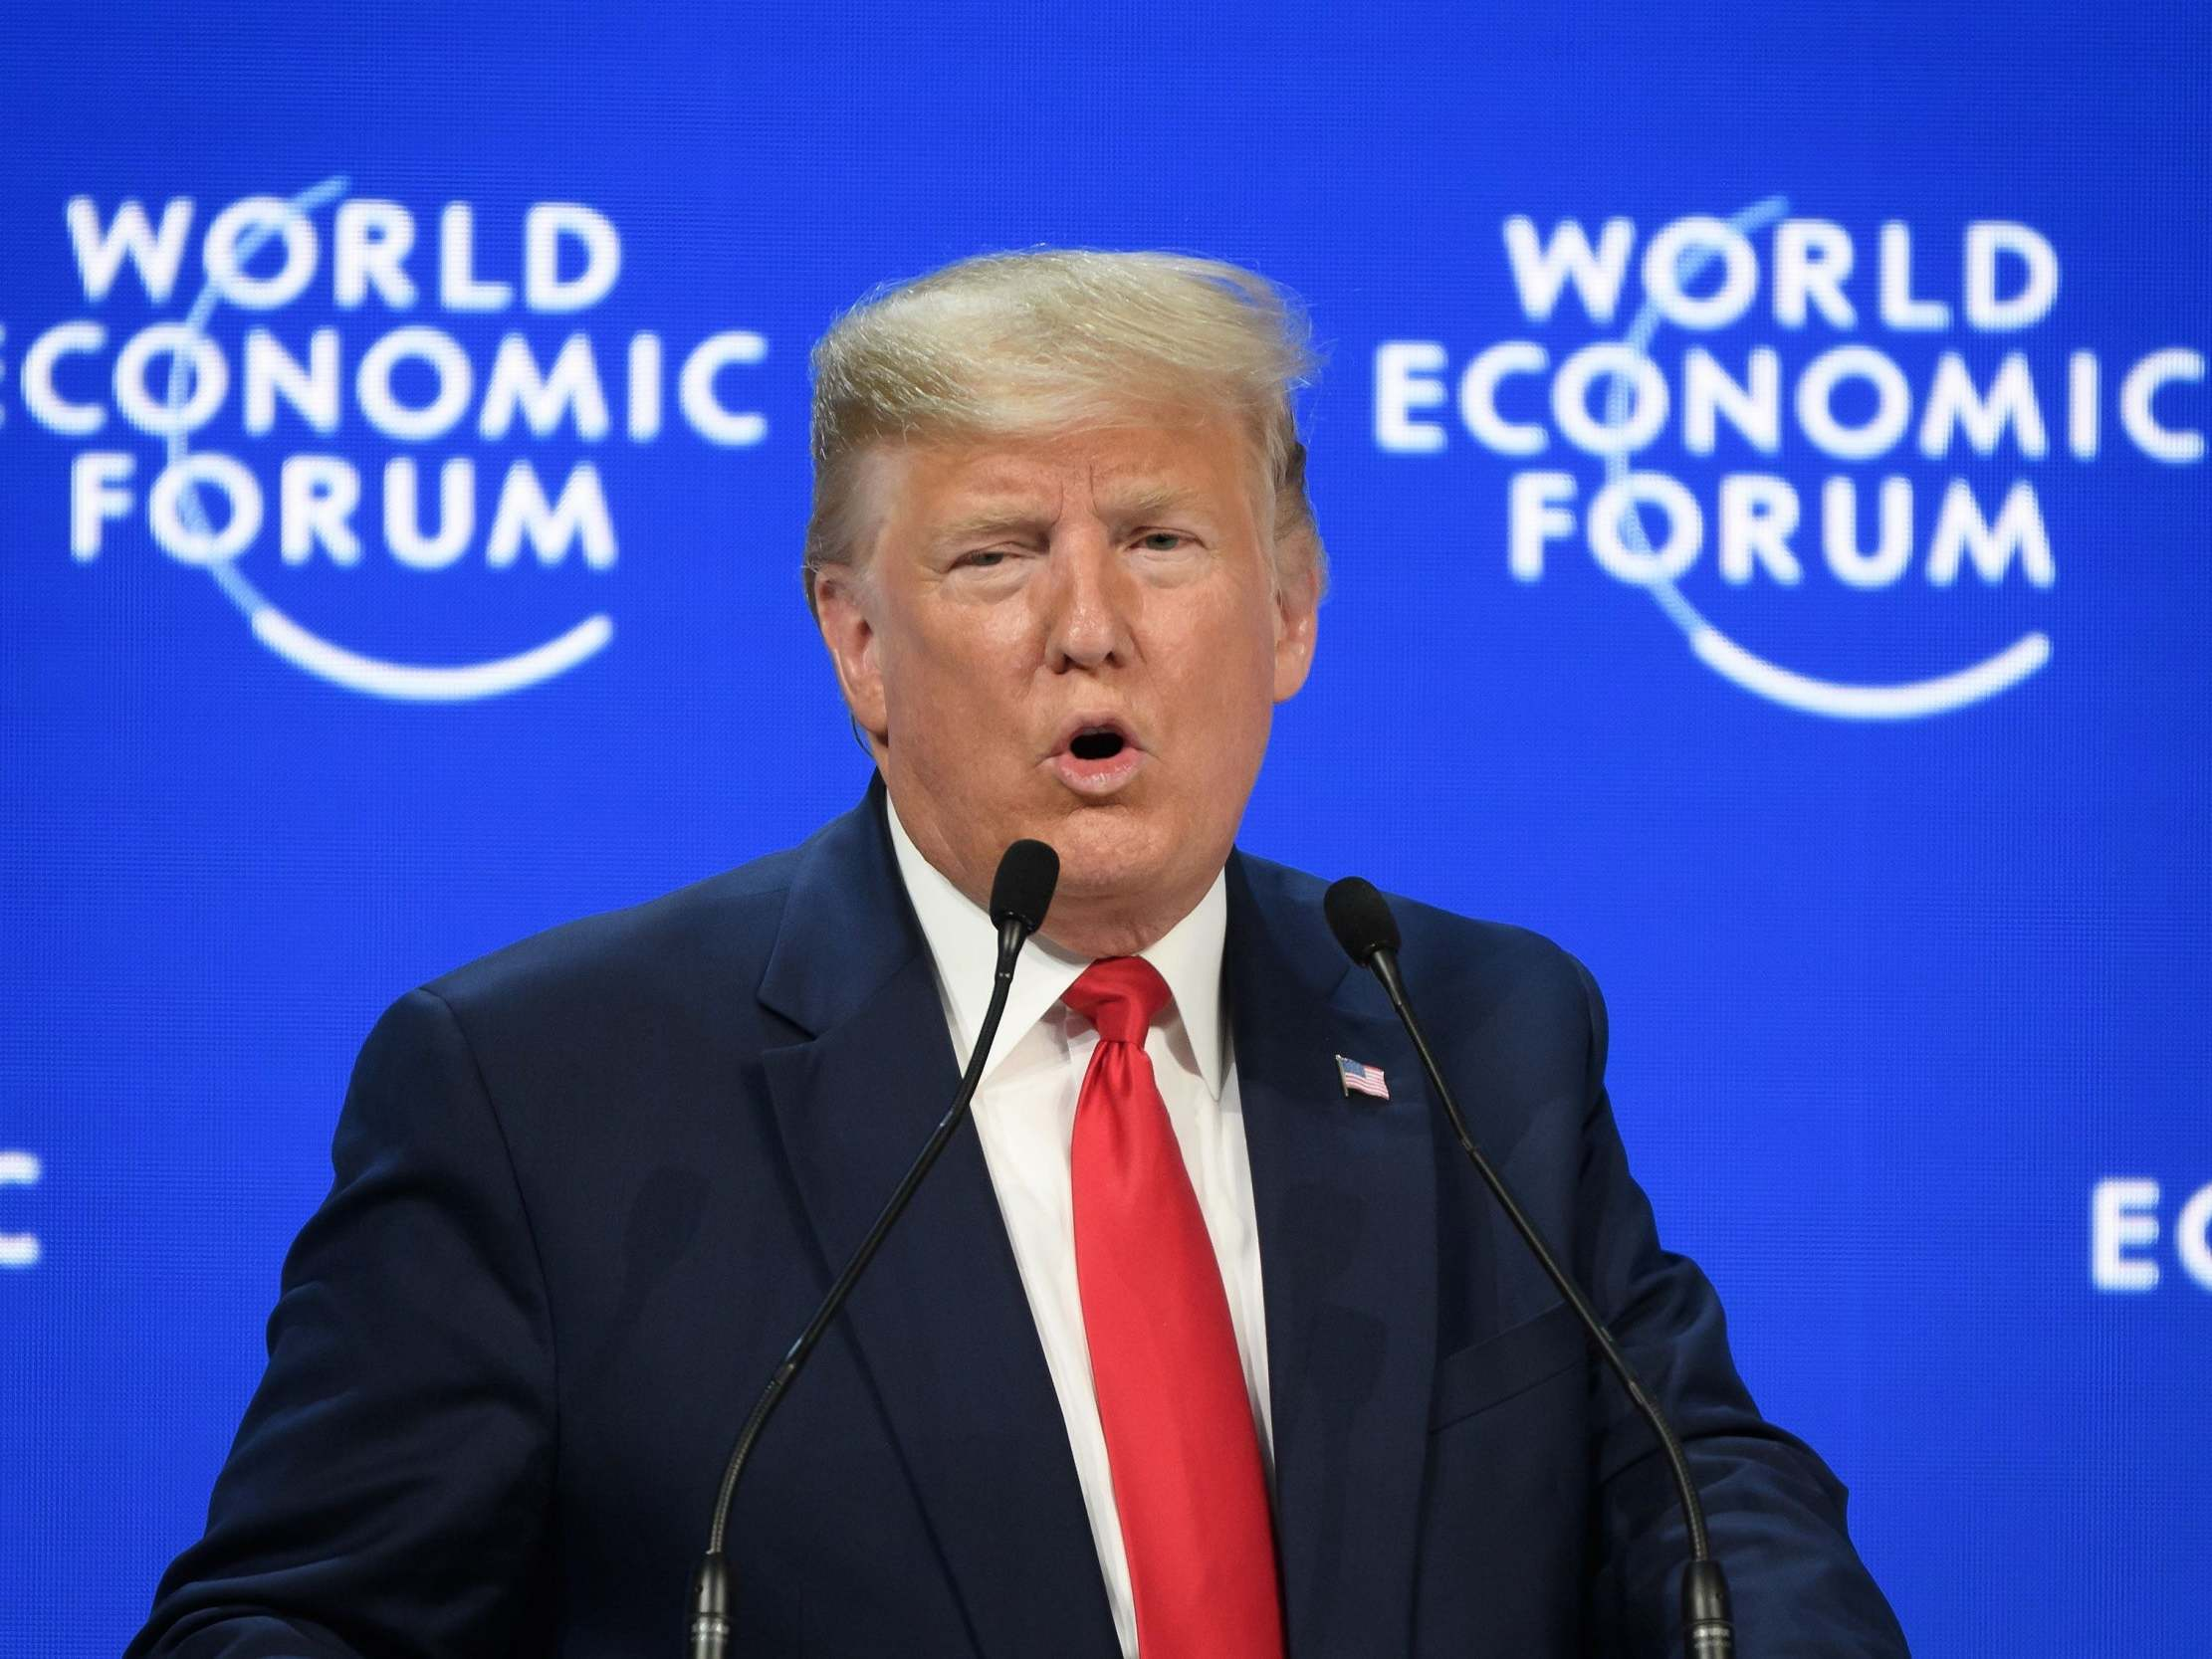 Trump's Davos speech instantly shot down by eminent economist: 'The characterisation of the economy is totally wrong'